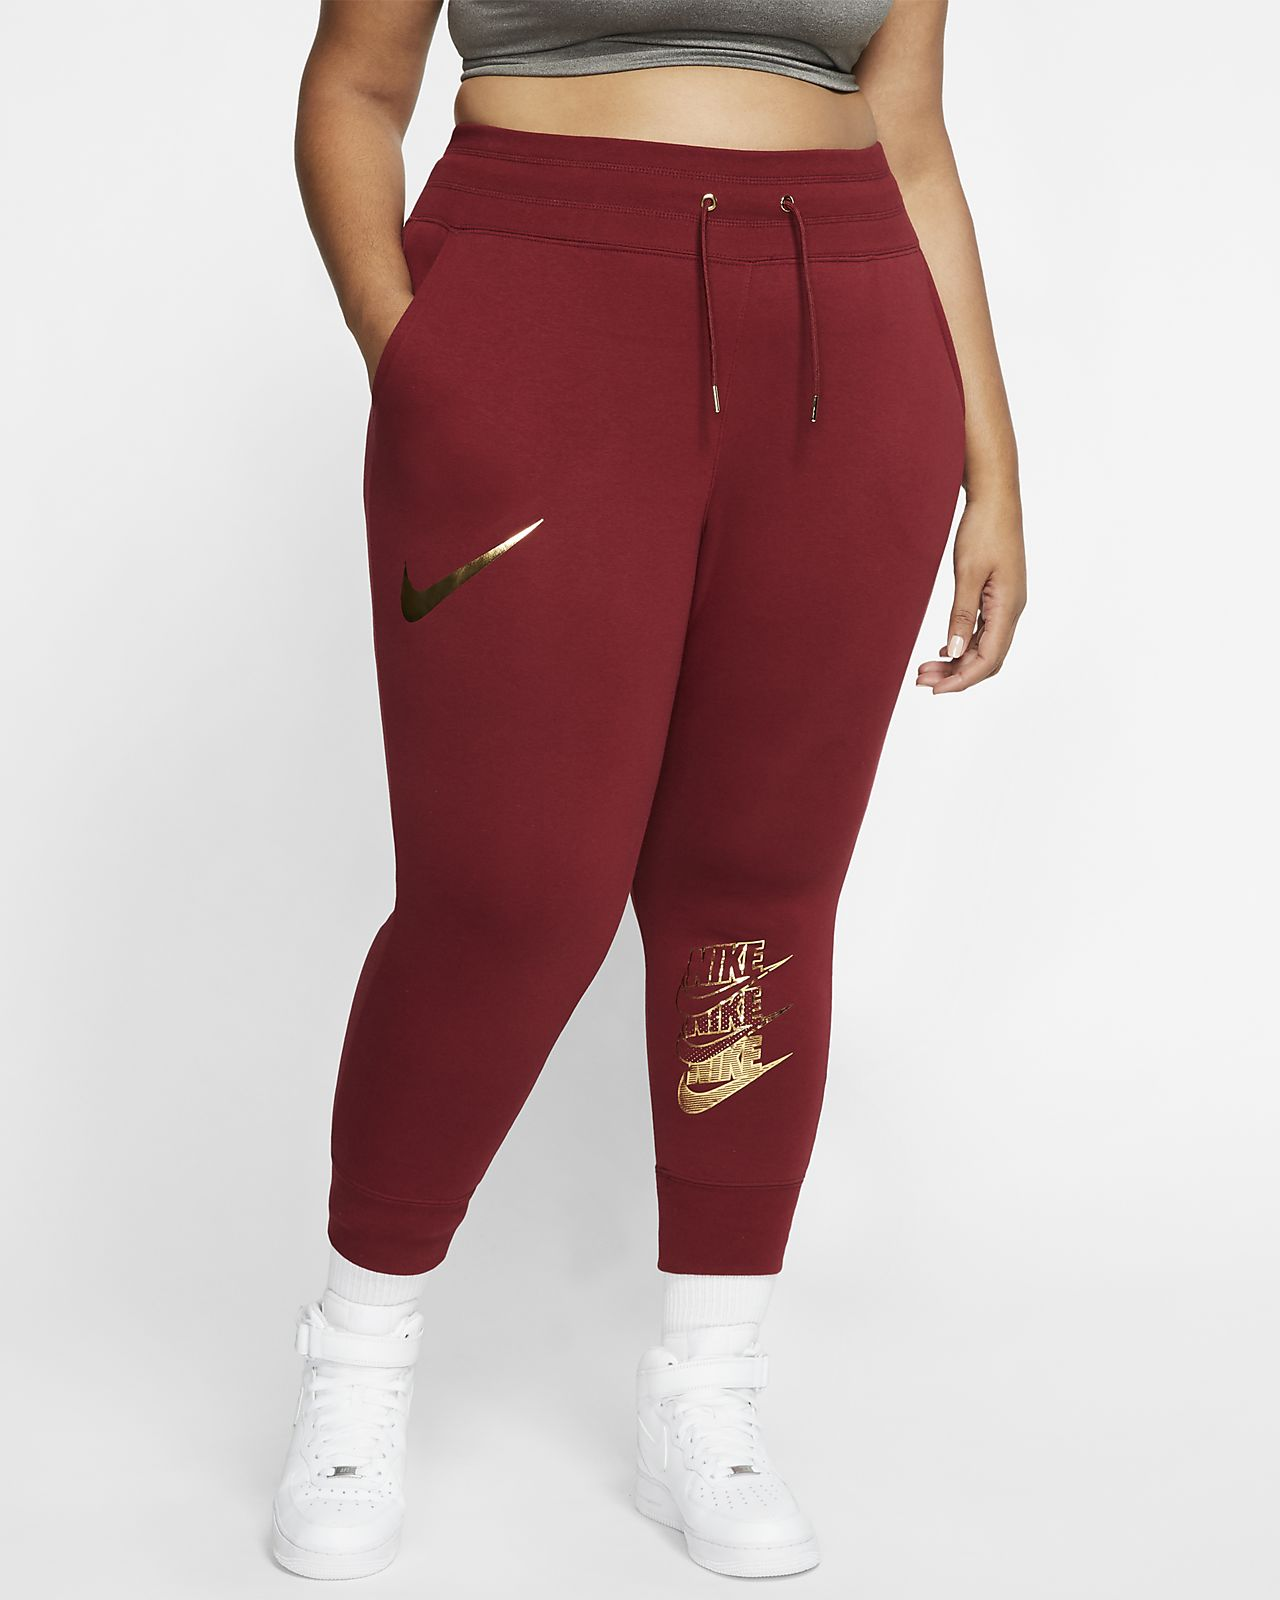 Nike Sportswear Women's Trousers (Plus Size)